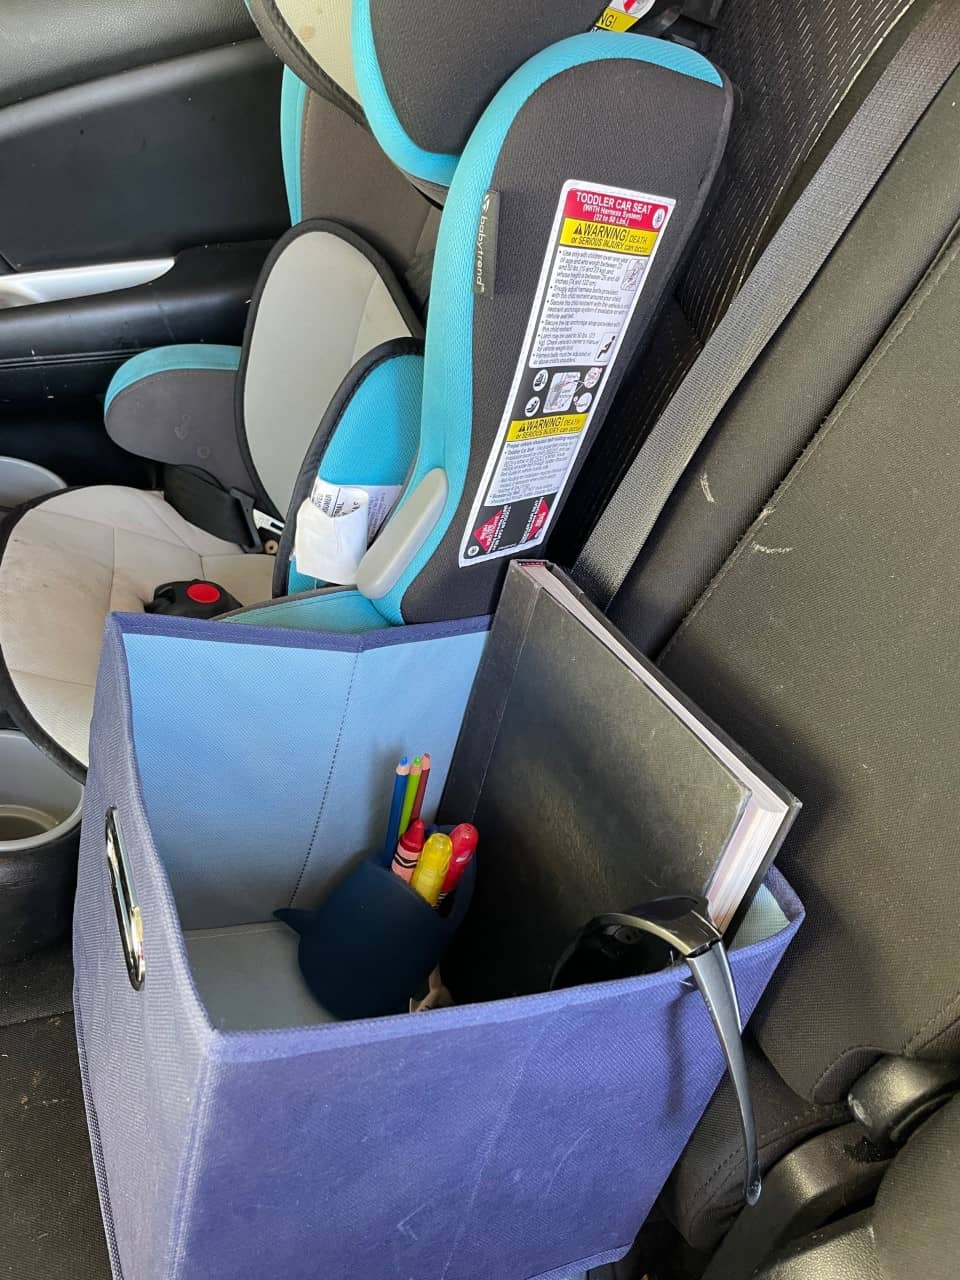 cloth bin next to child seat with sunglasses, rubber shark toothbrush holder with window paint markers and crayons, and book